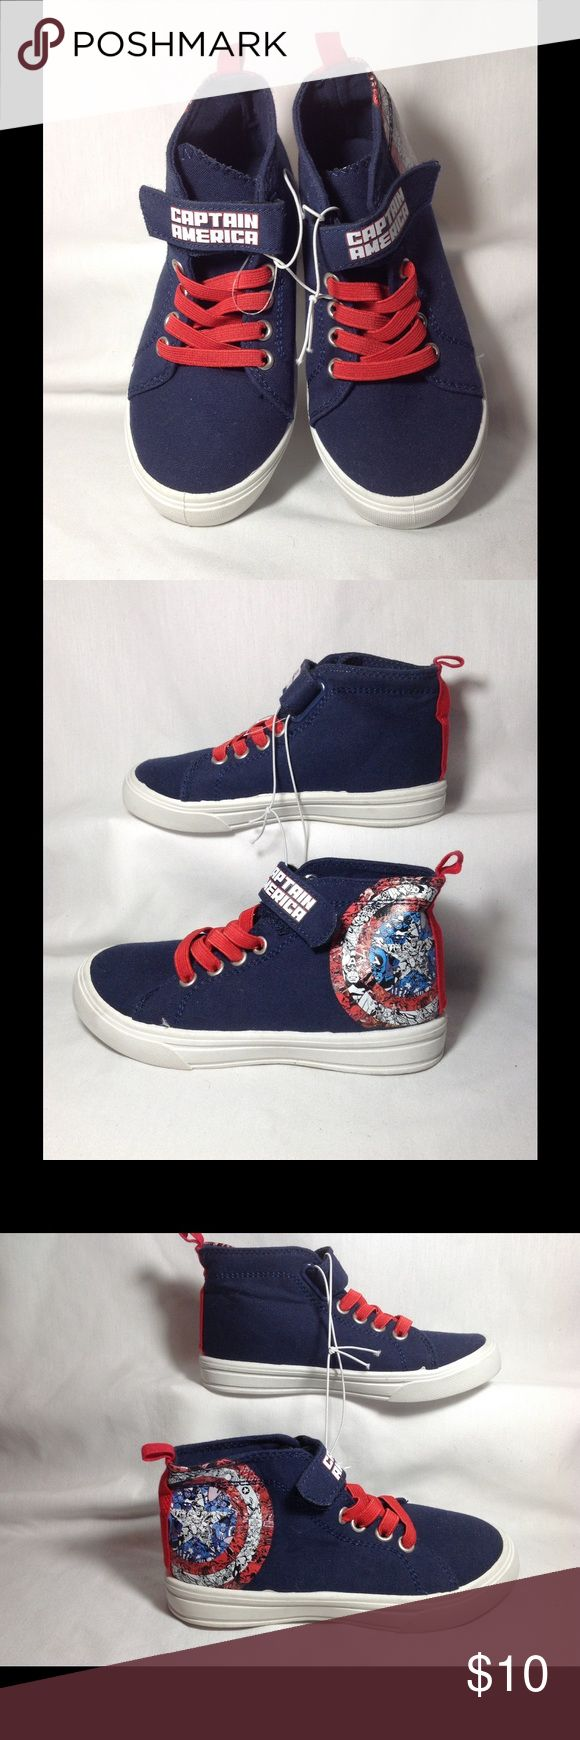 1000 ideas about captain america shoes on